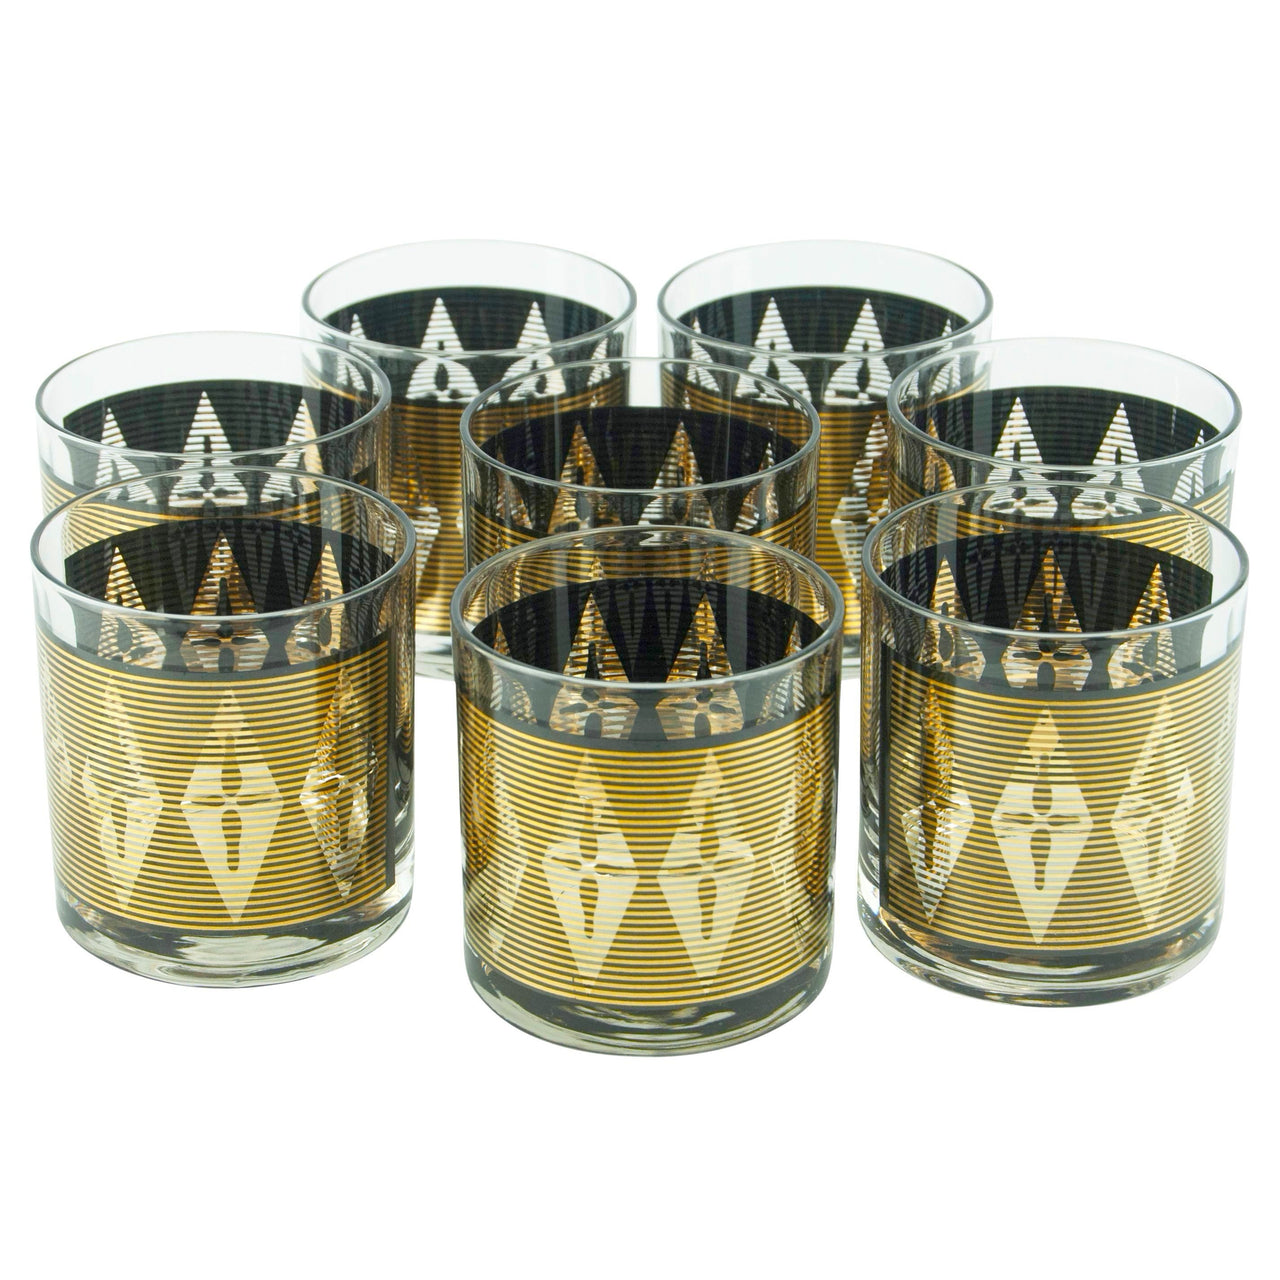 Gold & Black Diamond Rocks Glasses | The Hour Shop Vintage